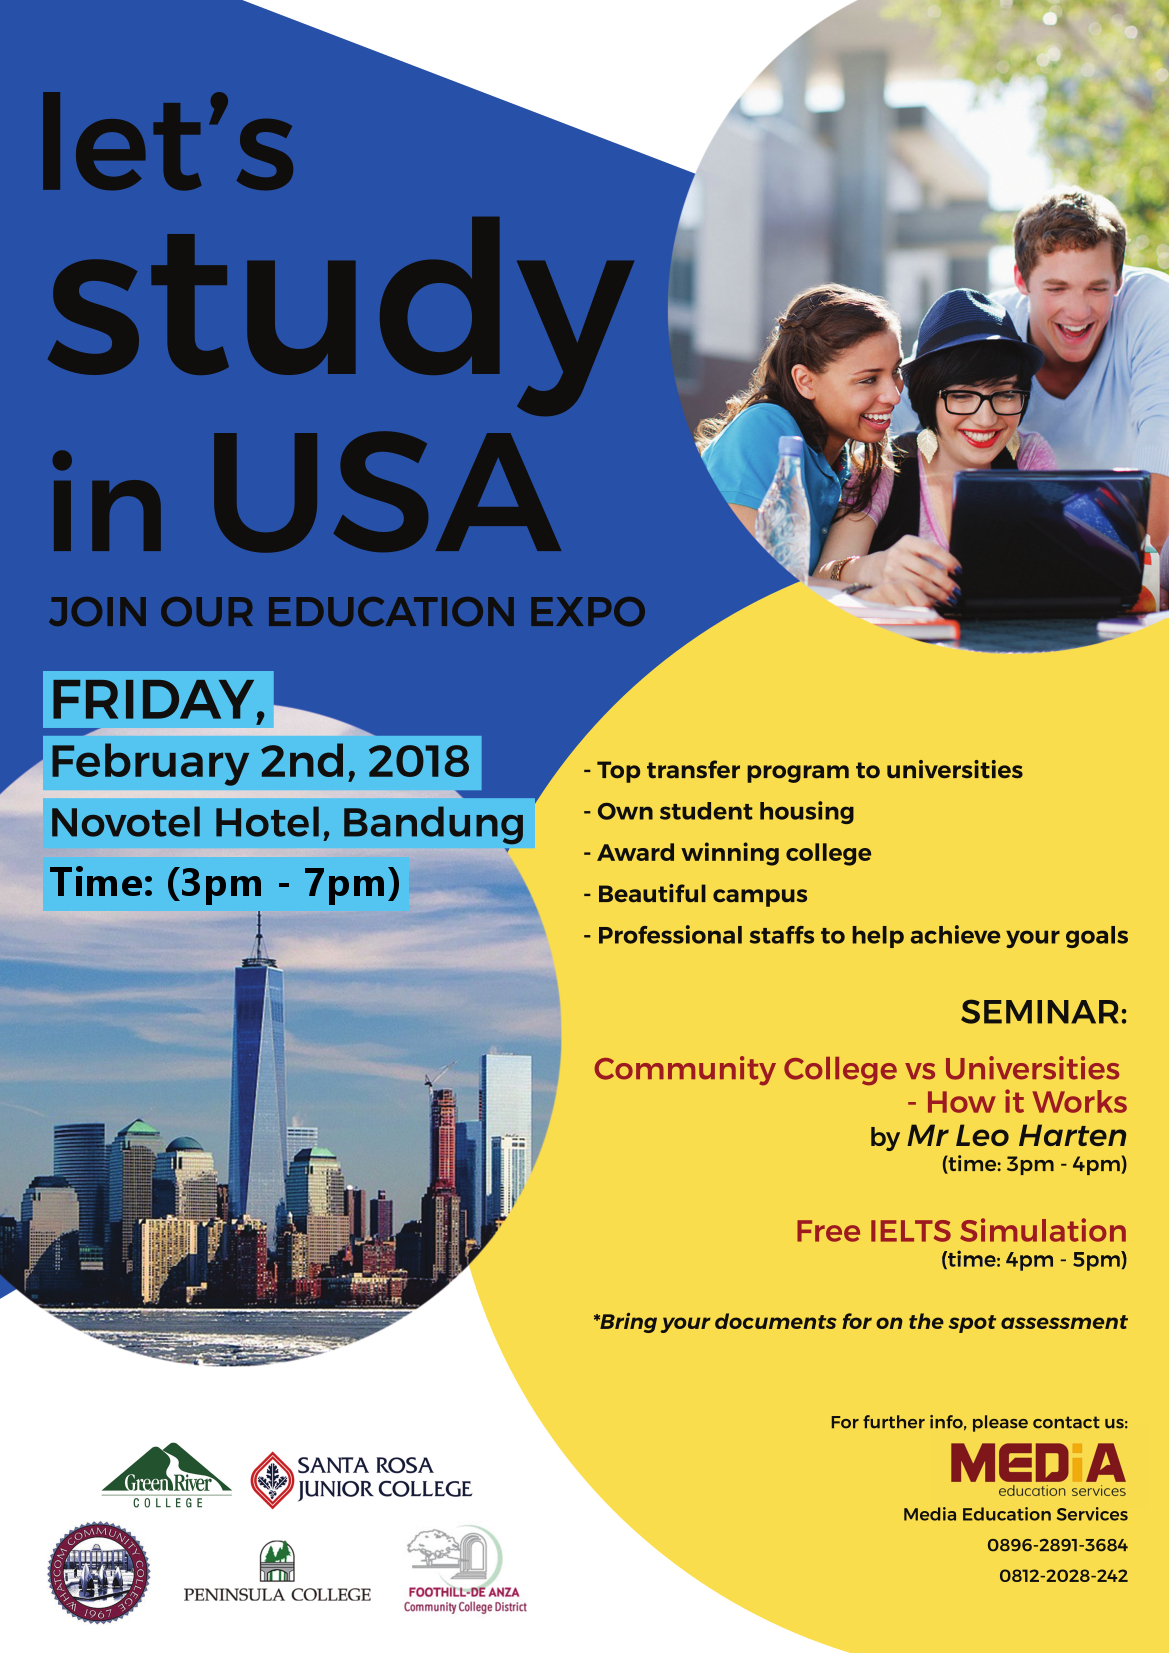 Let's study in USA!